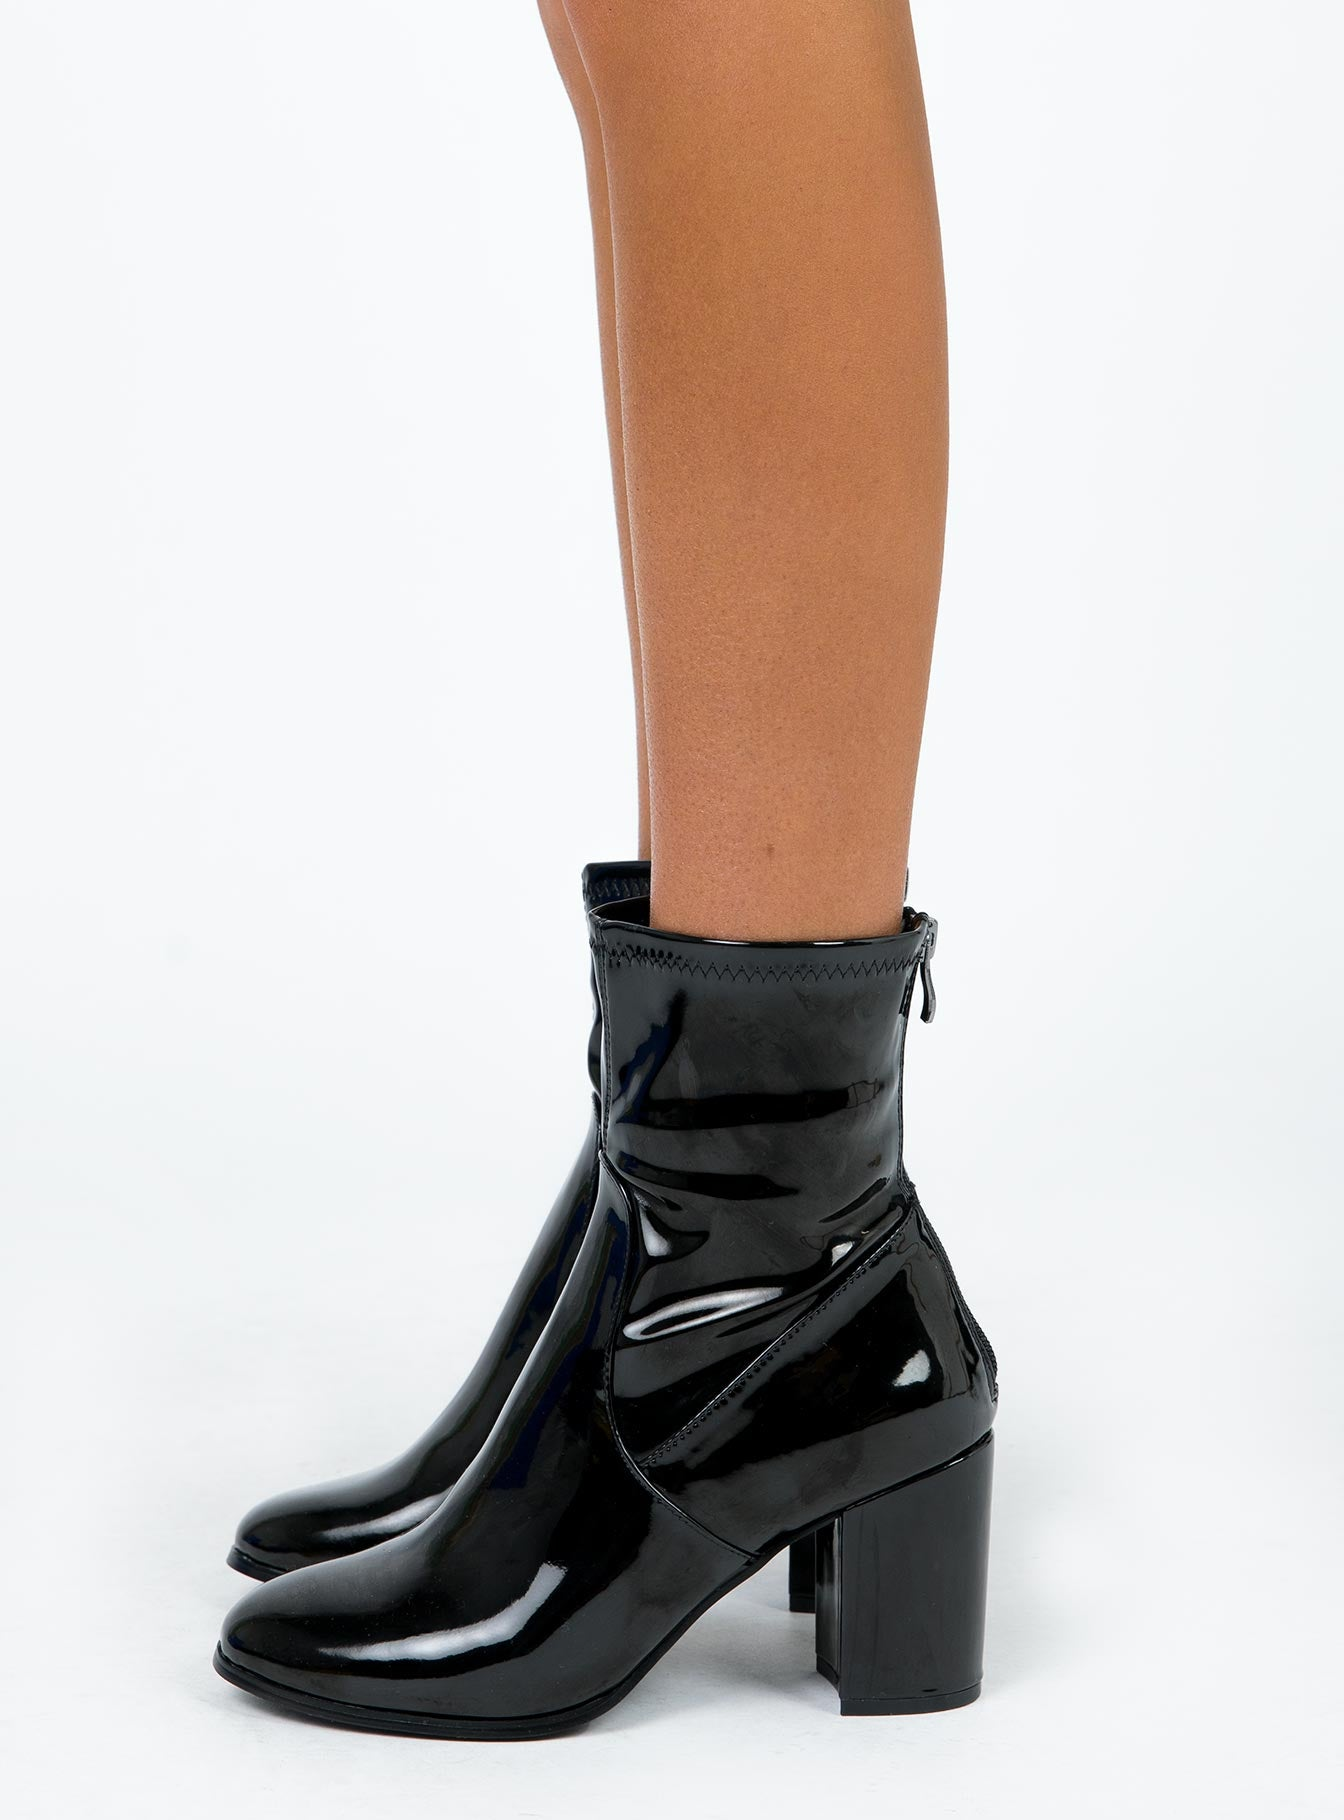 Therapy Black Liquid Hoxton Boots